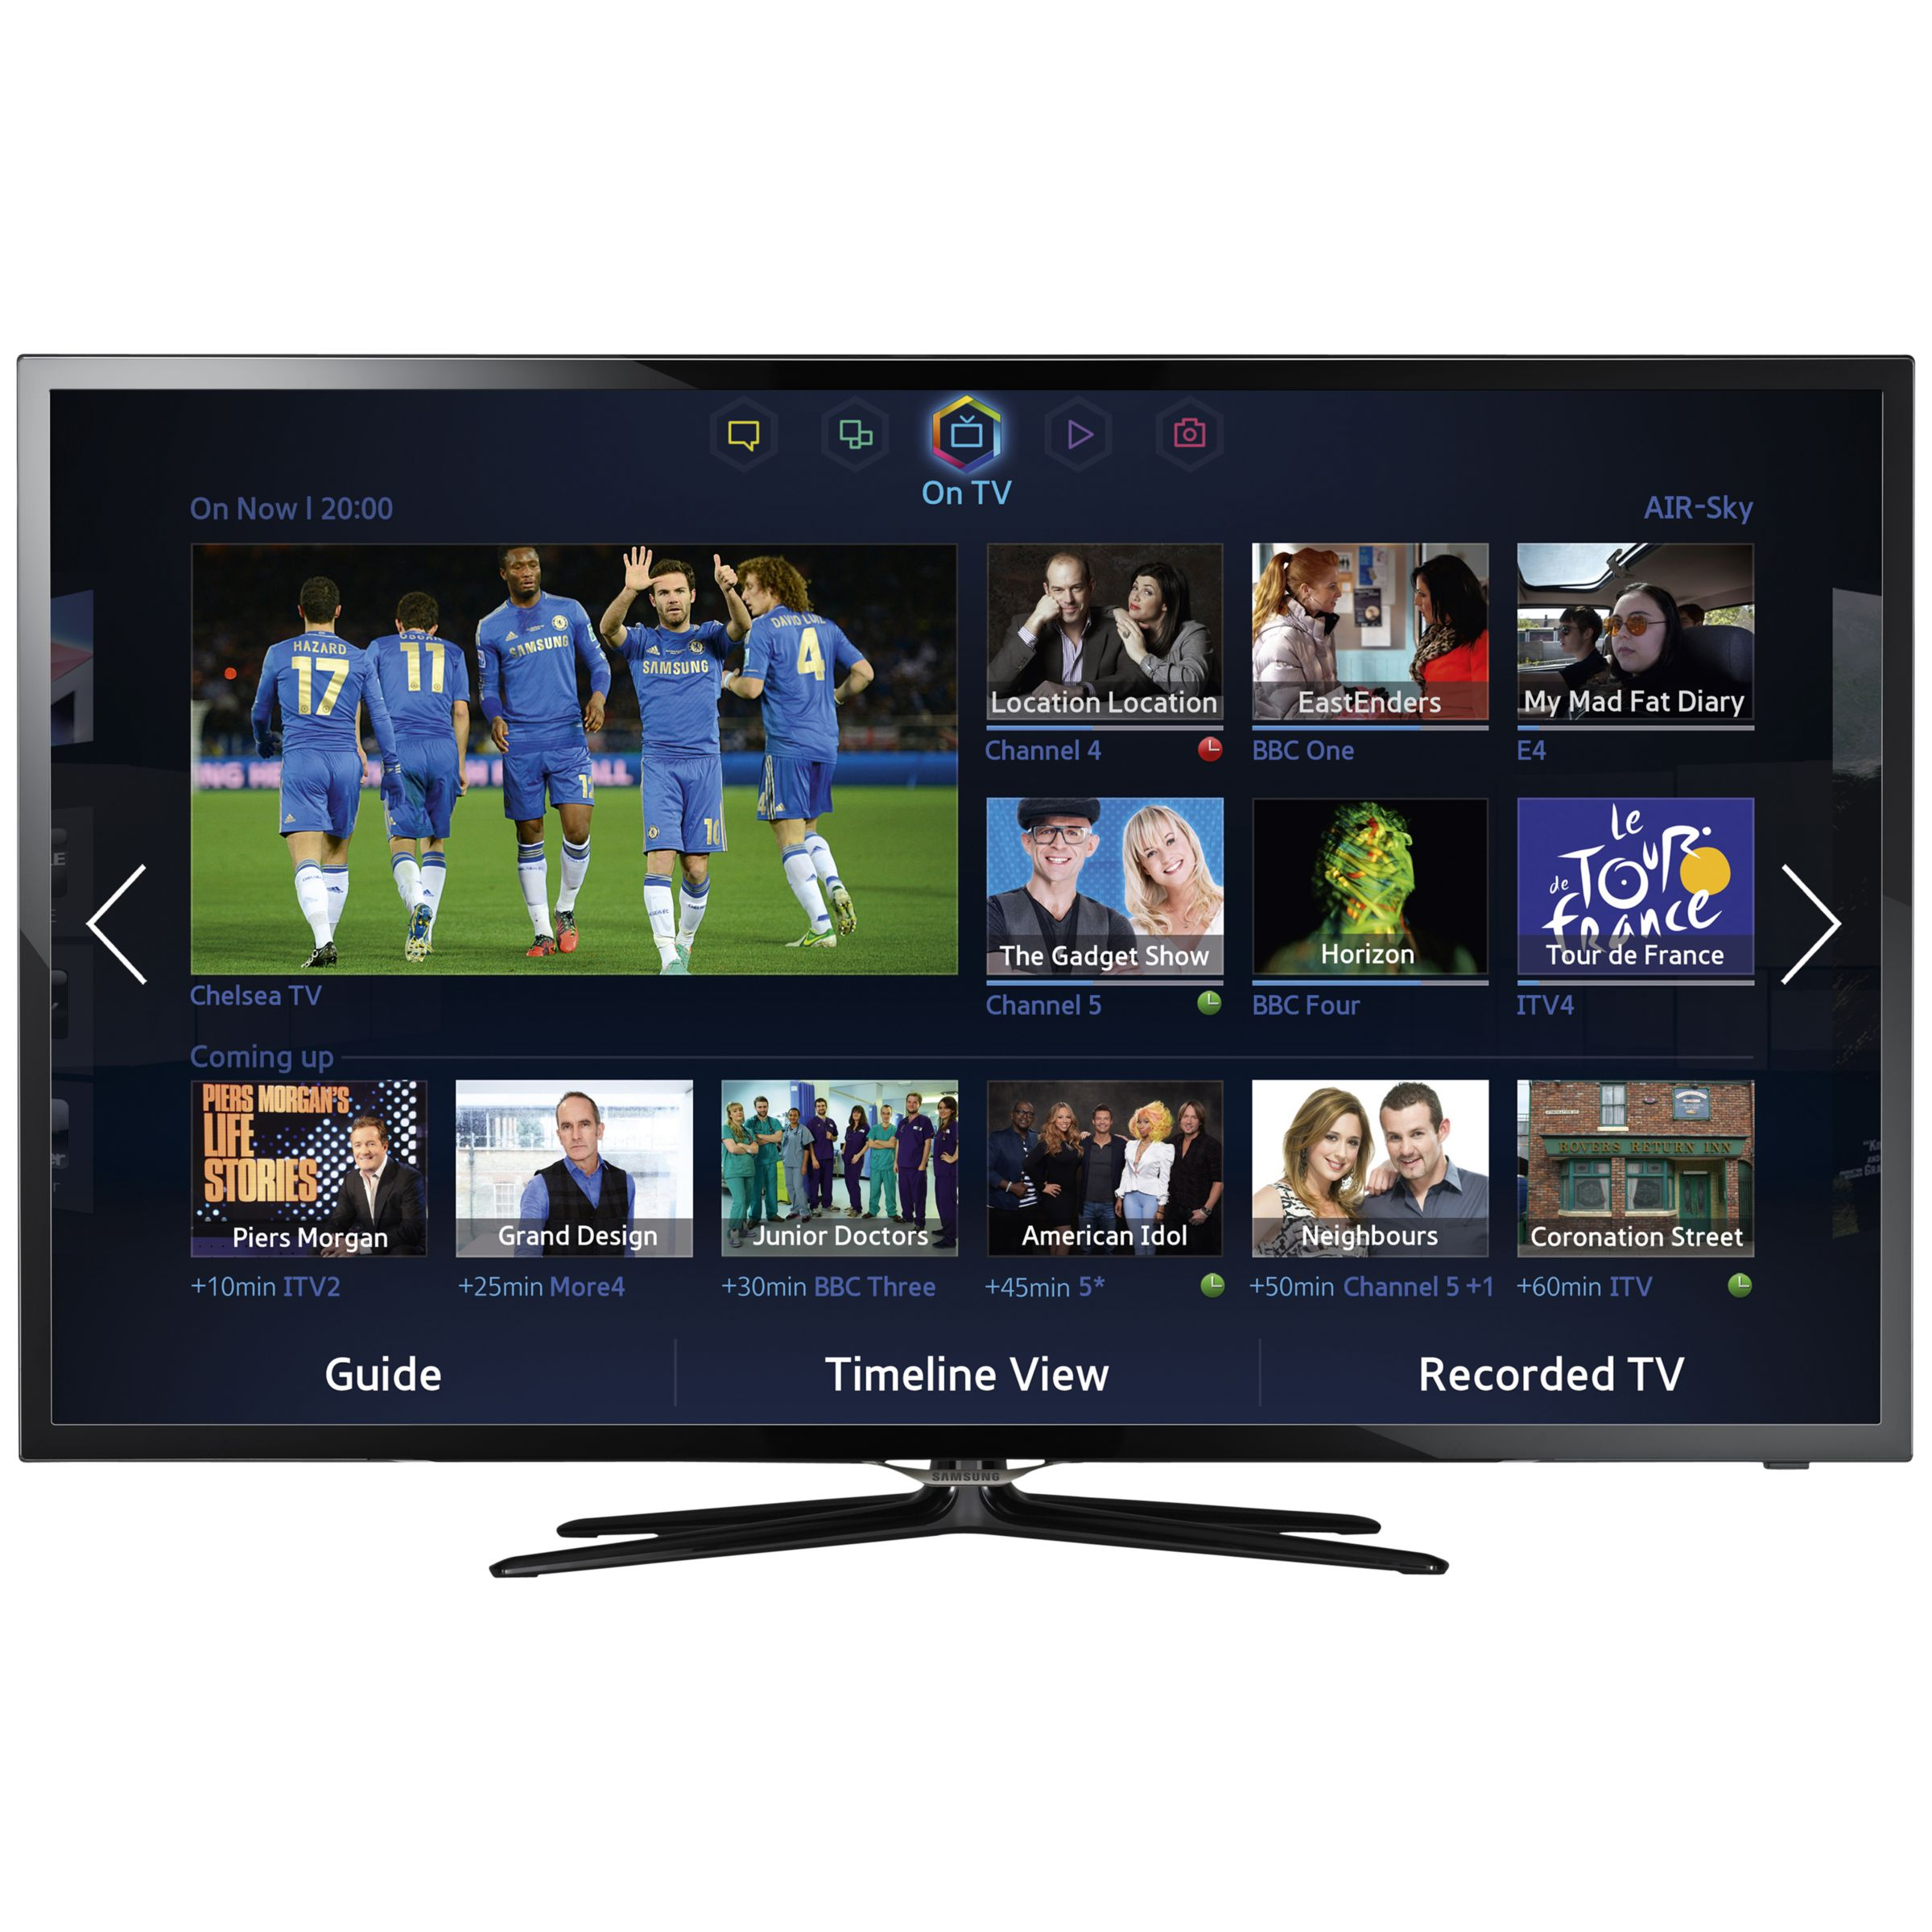 Samsung UE42F5500 LED HD 1080p Smart TV, 42 Inch with Freeview HD